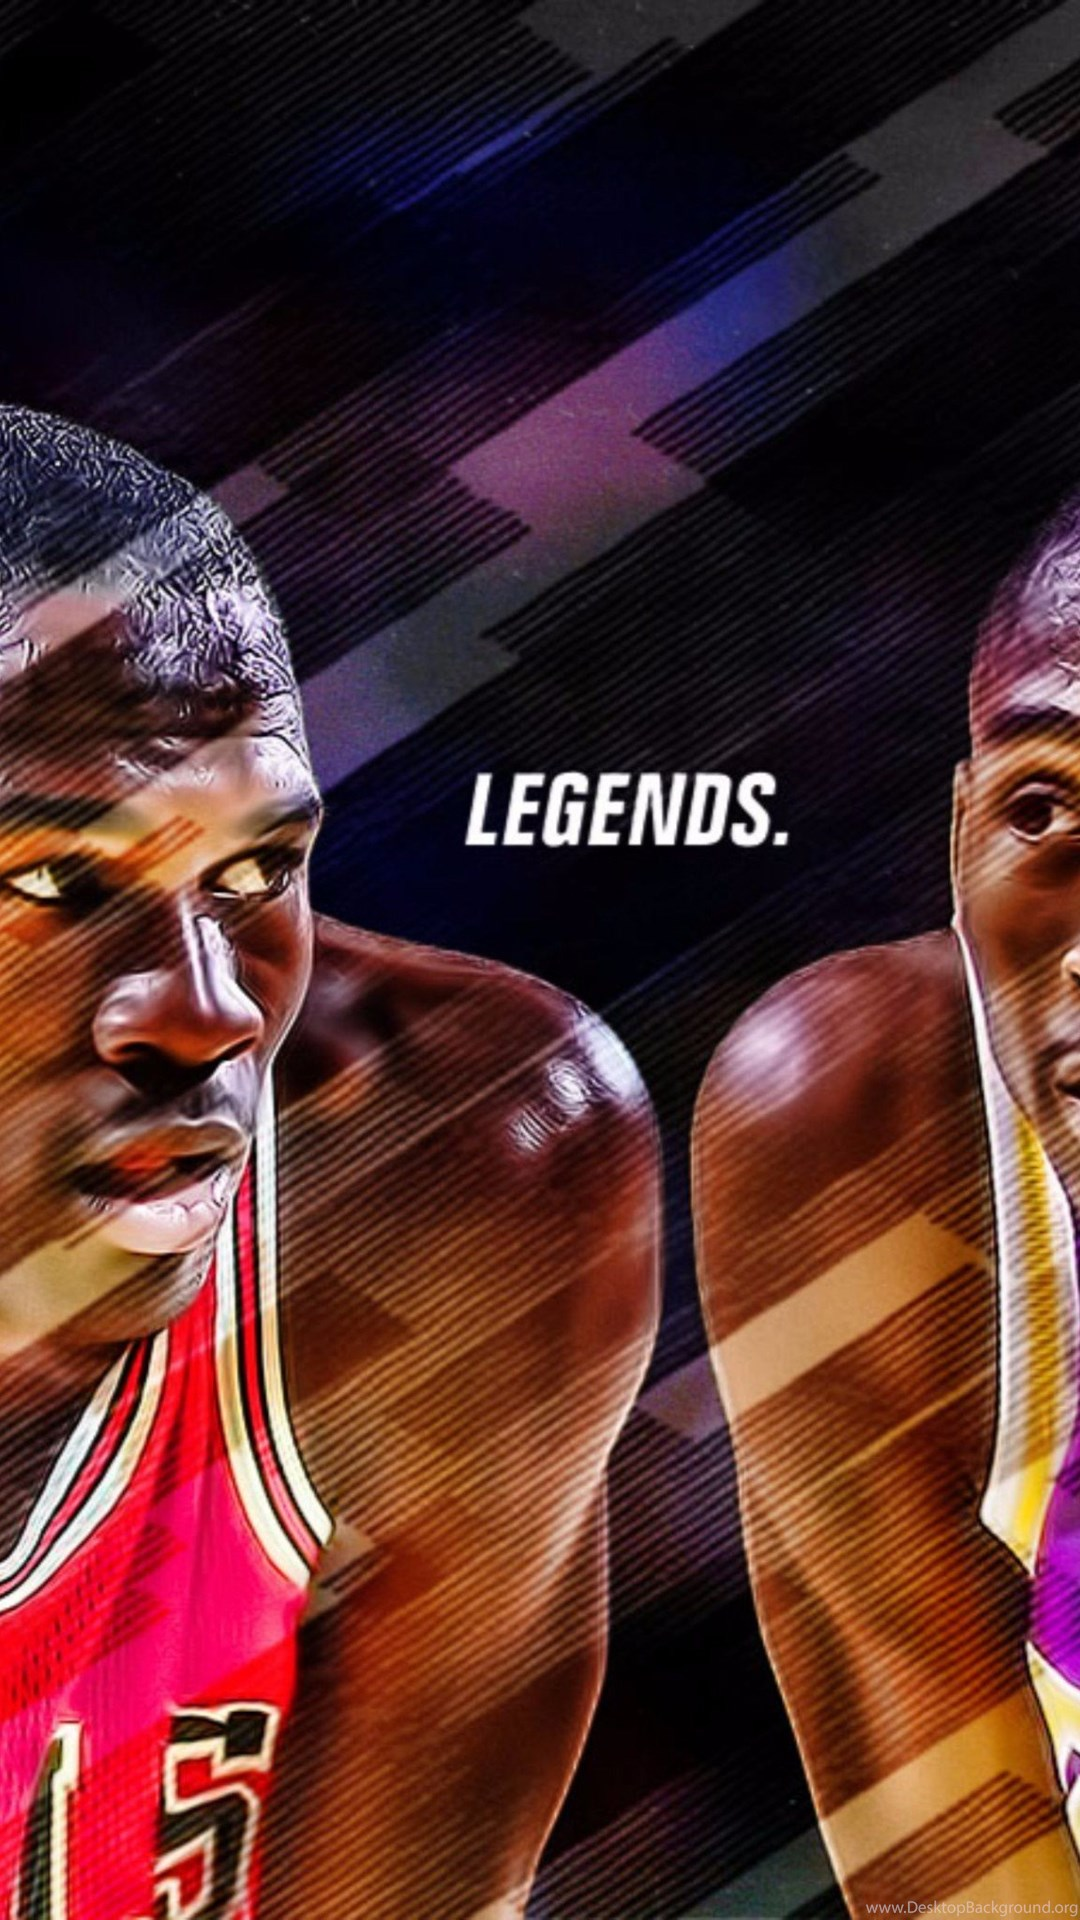 Michael Jordan Wallpaper Iphone 5 Jordan And Kobe Bryant 4k Wallpapers Desktop Background